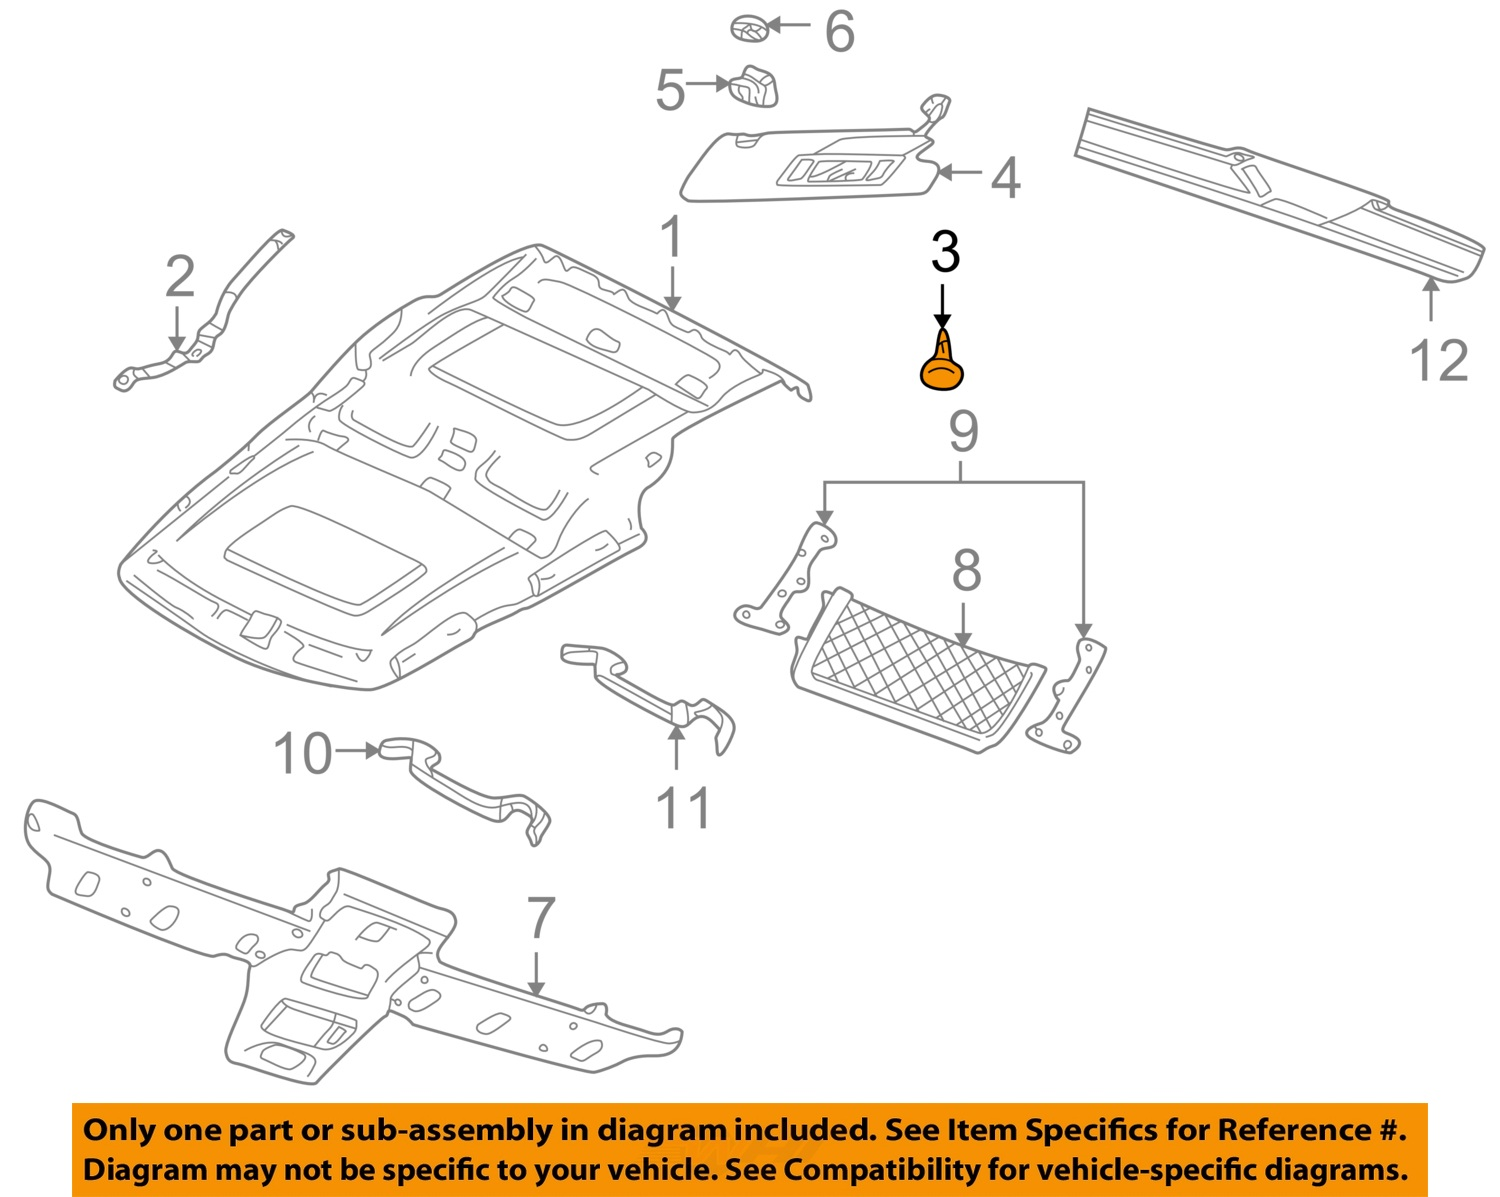 Land Rover Discovery Rear Axle Diagram Excellent Electrical Wiring 2 Headliner Diagrams Schemes Interior Defender